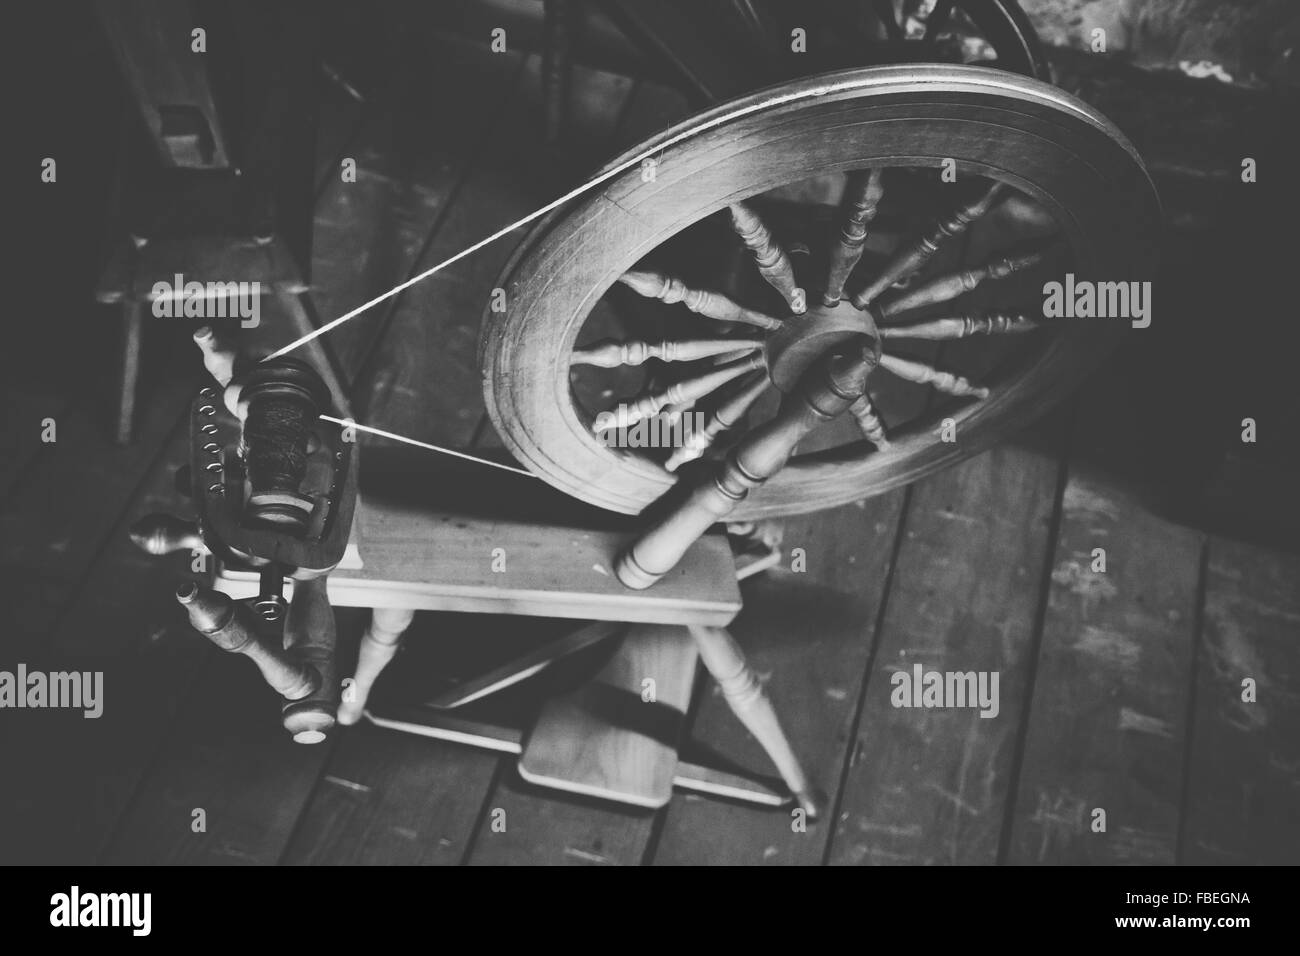 High Angle View Of Old Spinning Wheel At Home Stock Photo